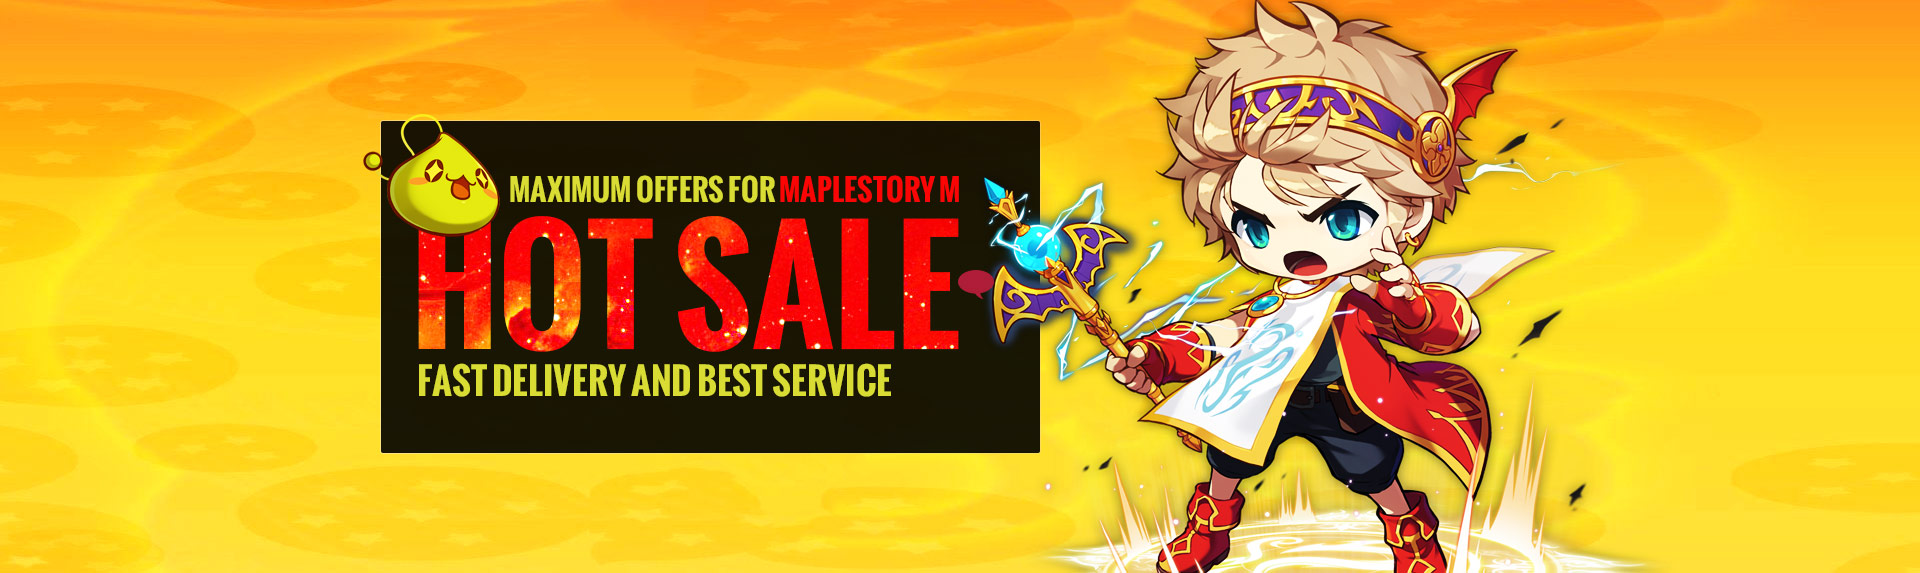 Maplestory M Hot Sale